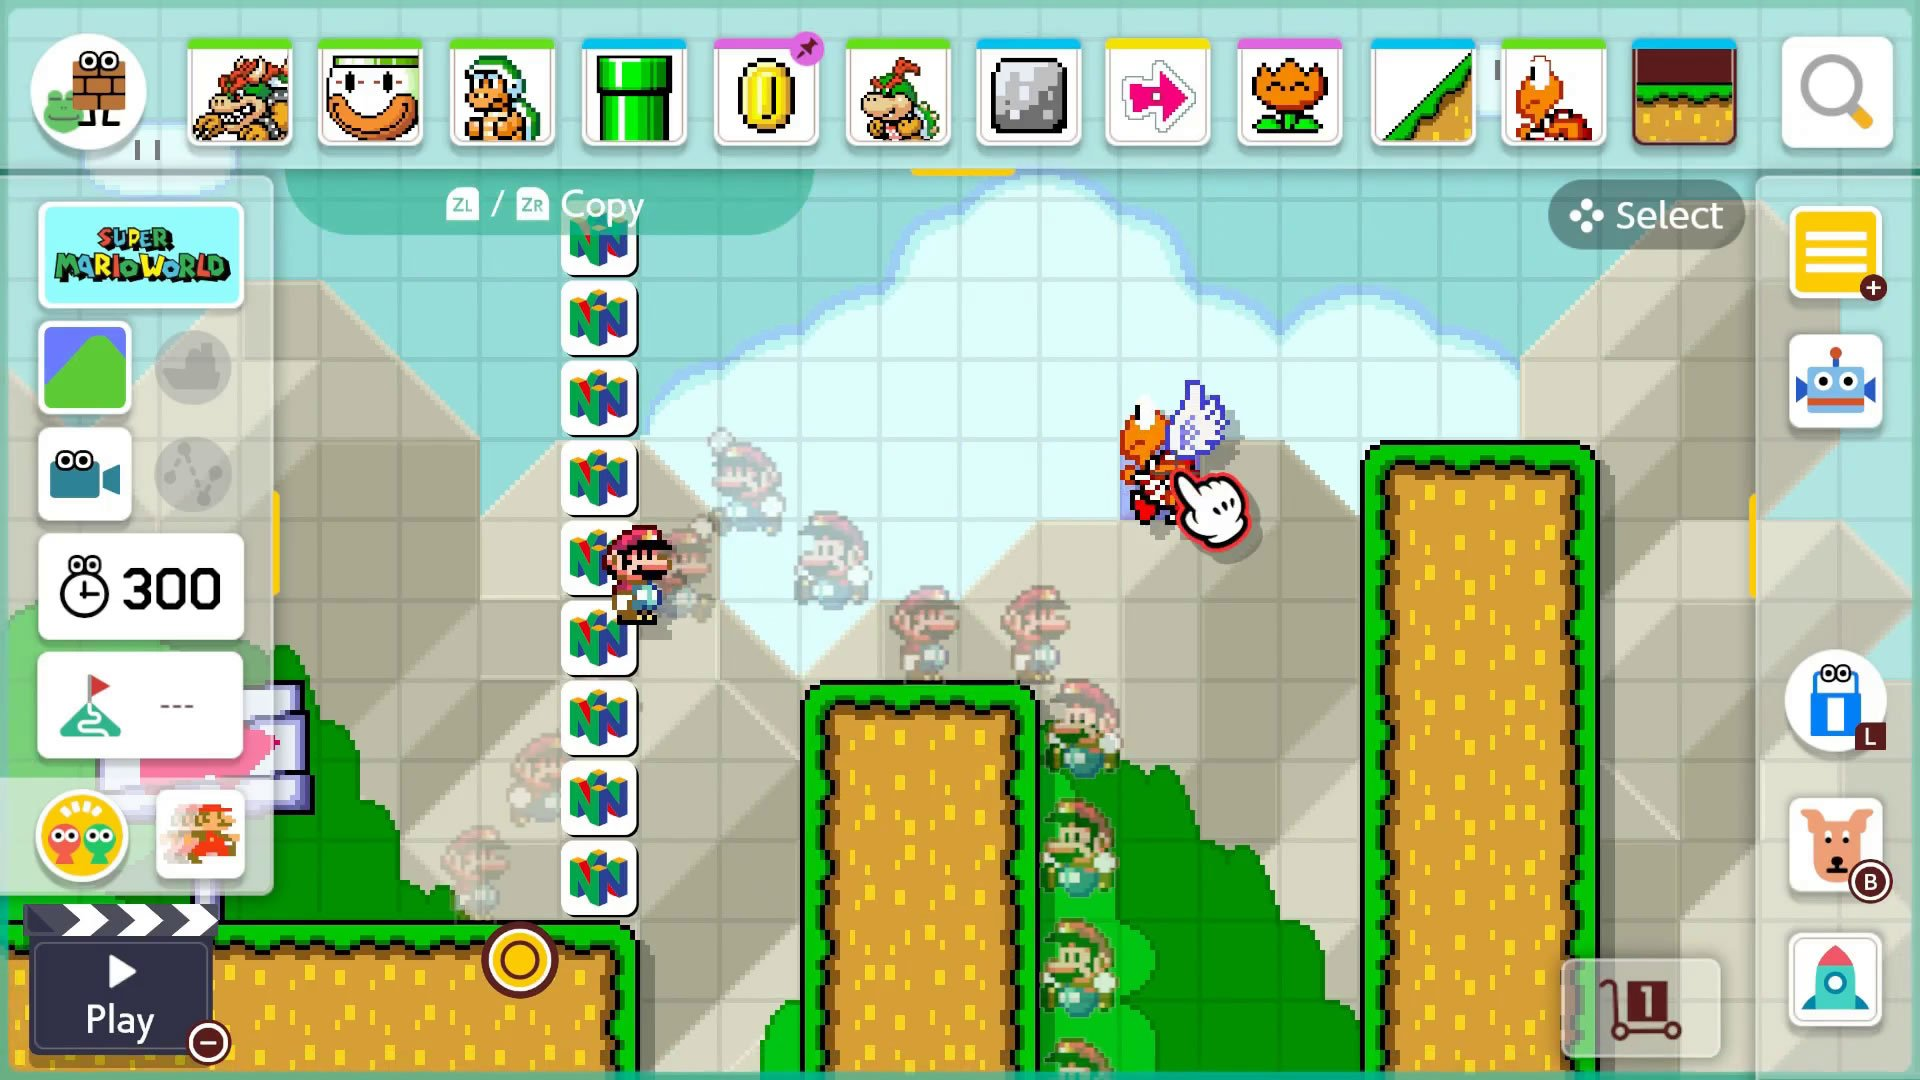 Super Mario Maker 2 Course Maker - How to grab and copy objects